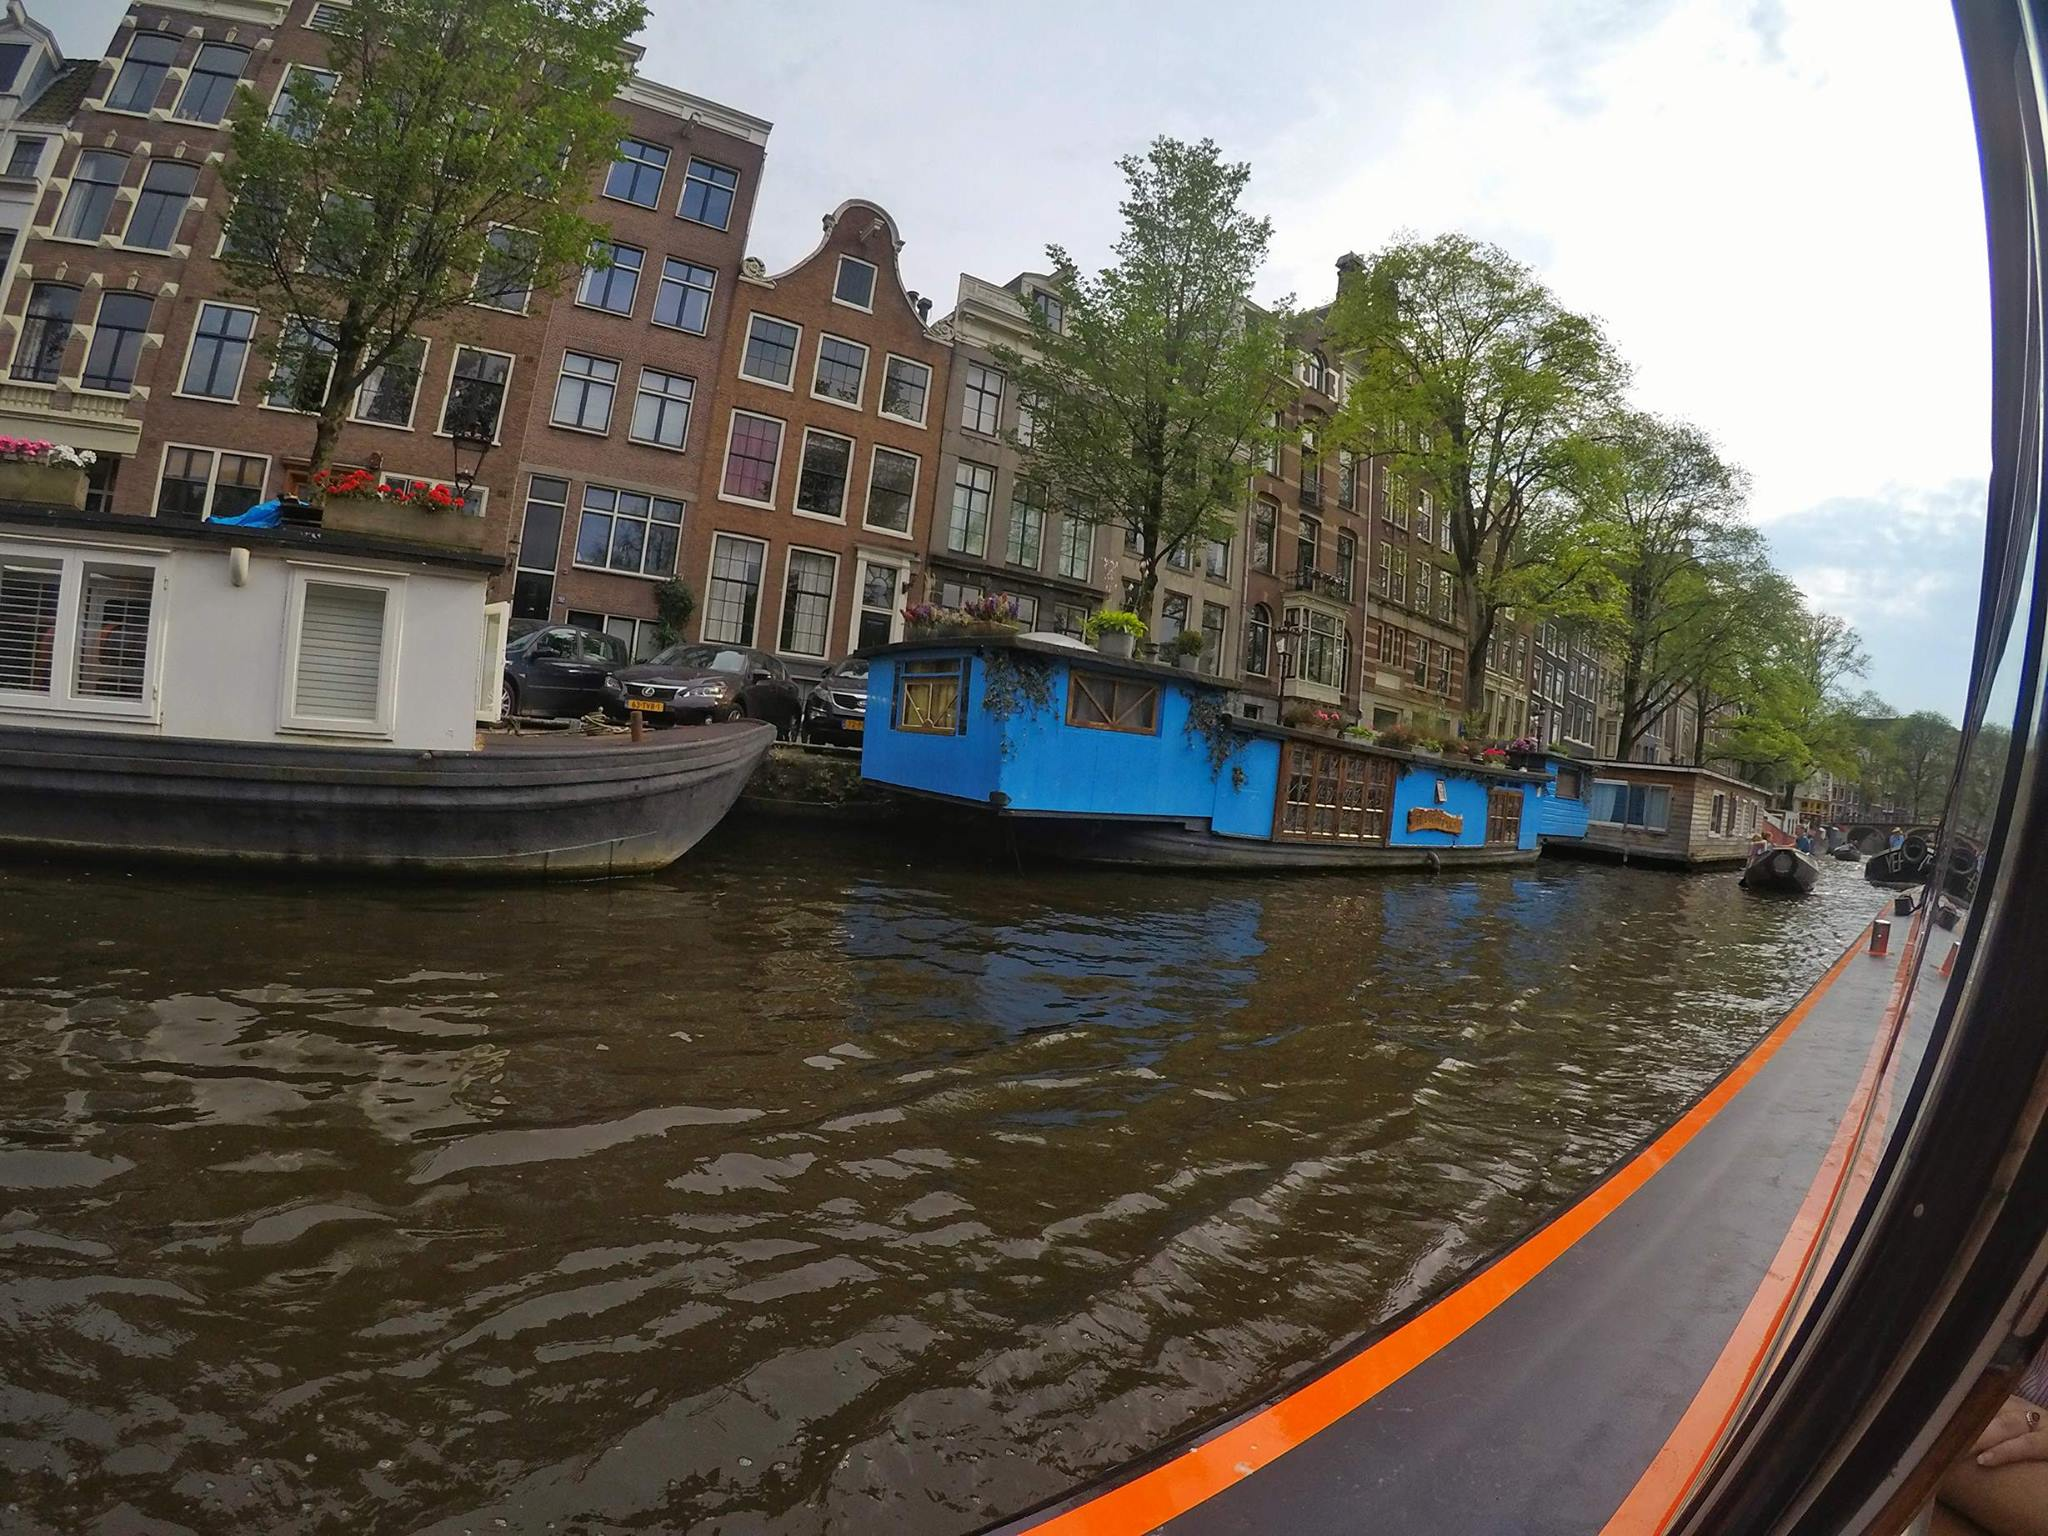 best boat tours Amsterdam